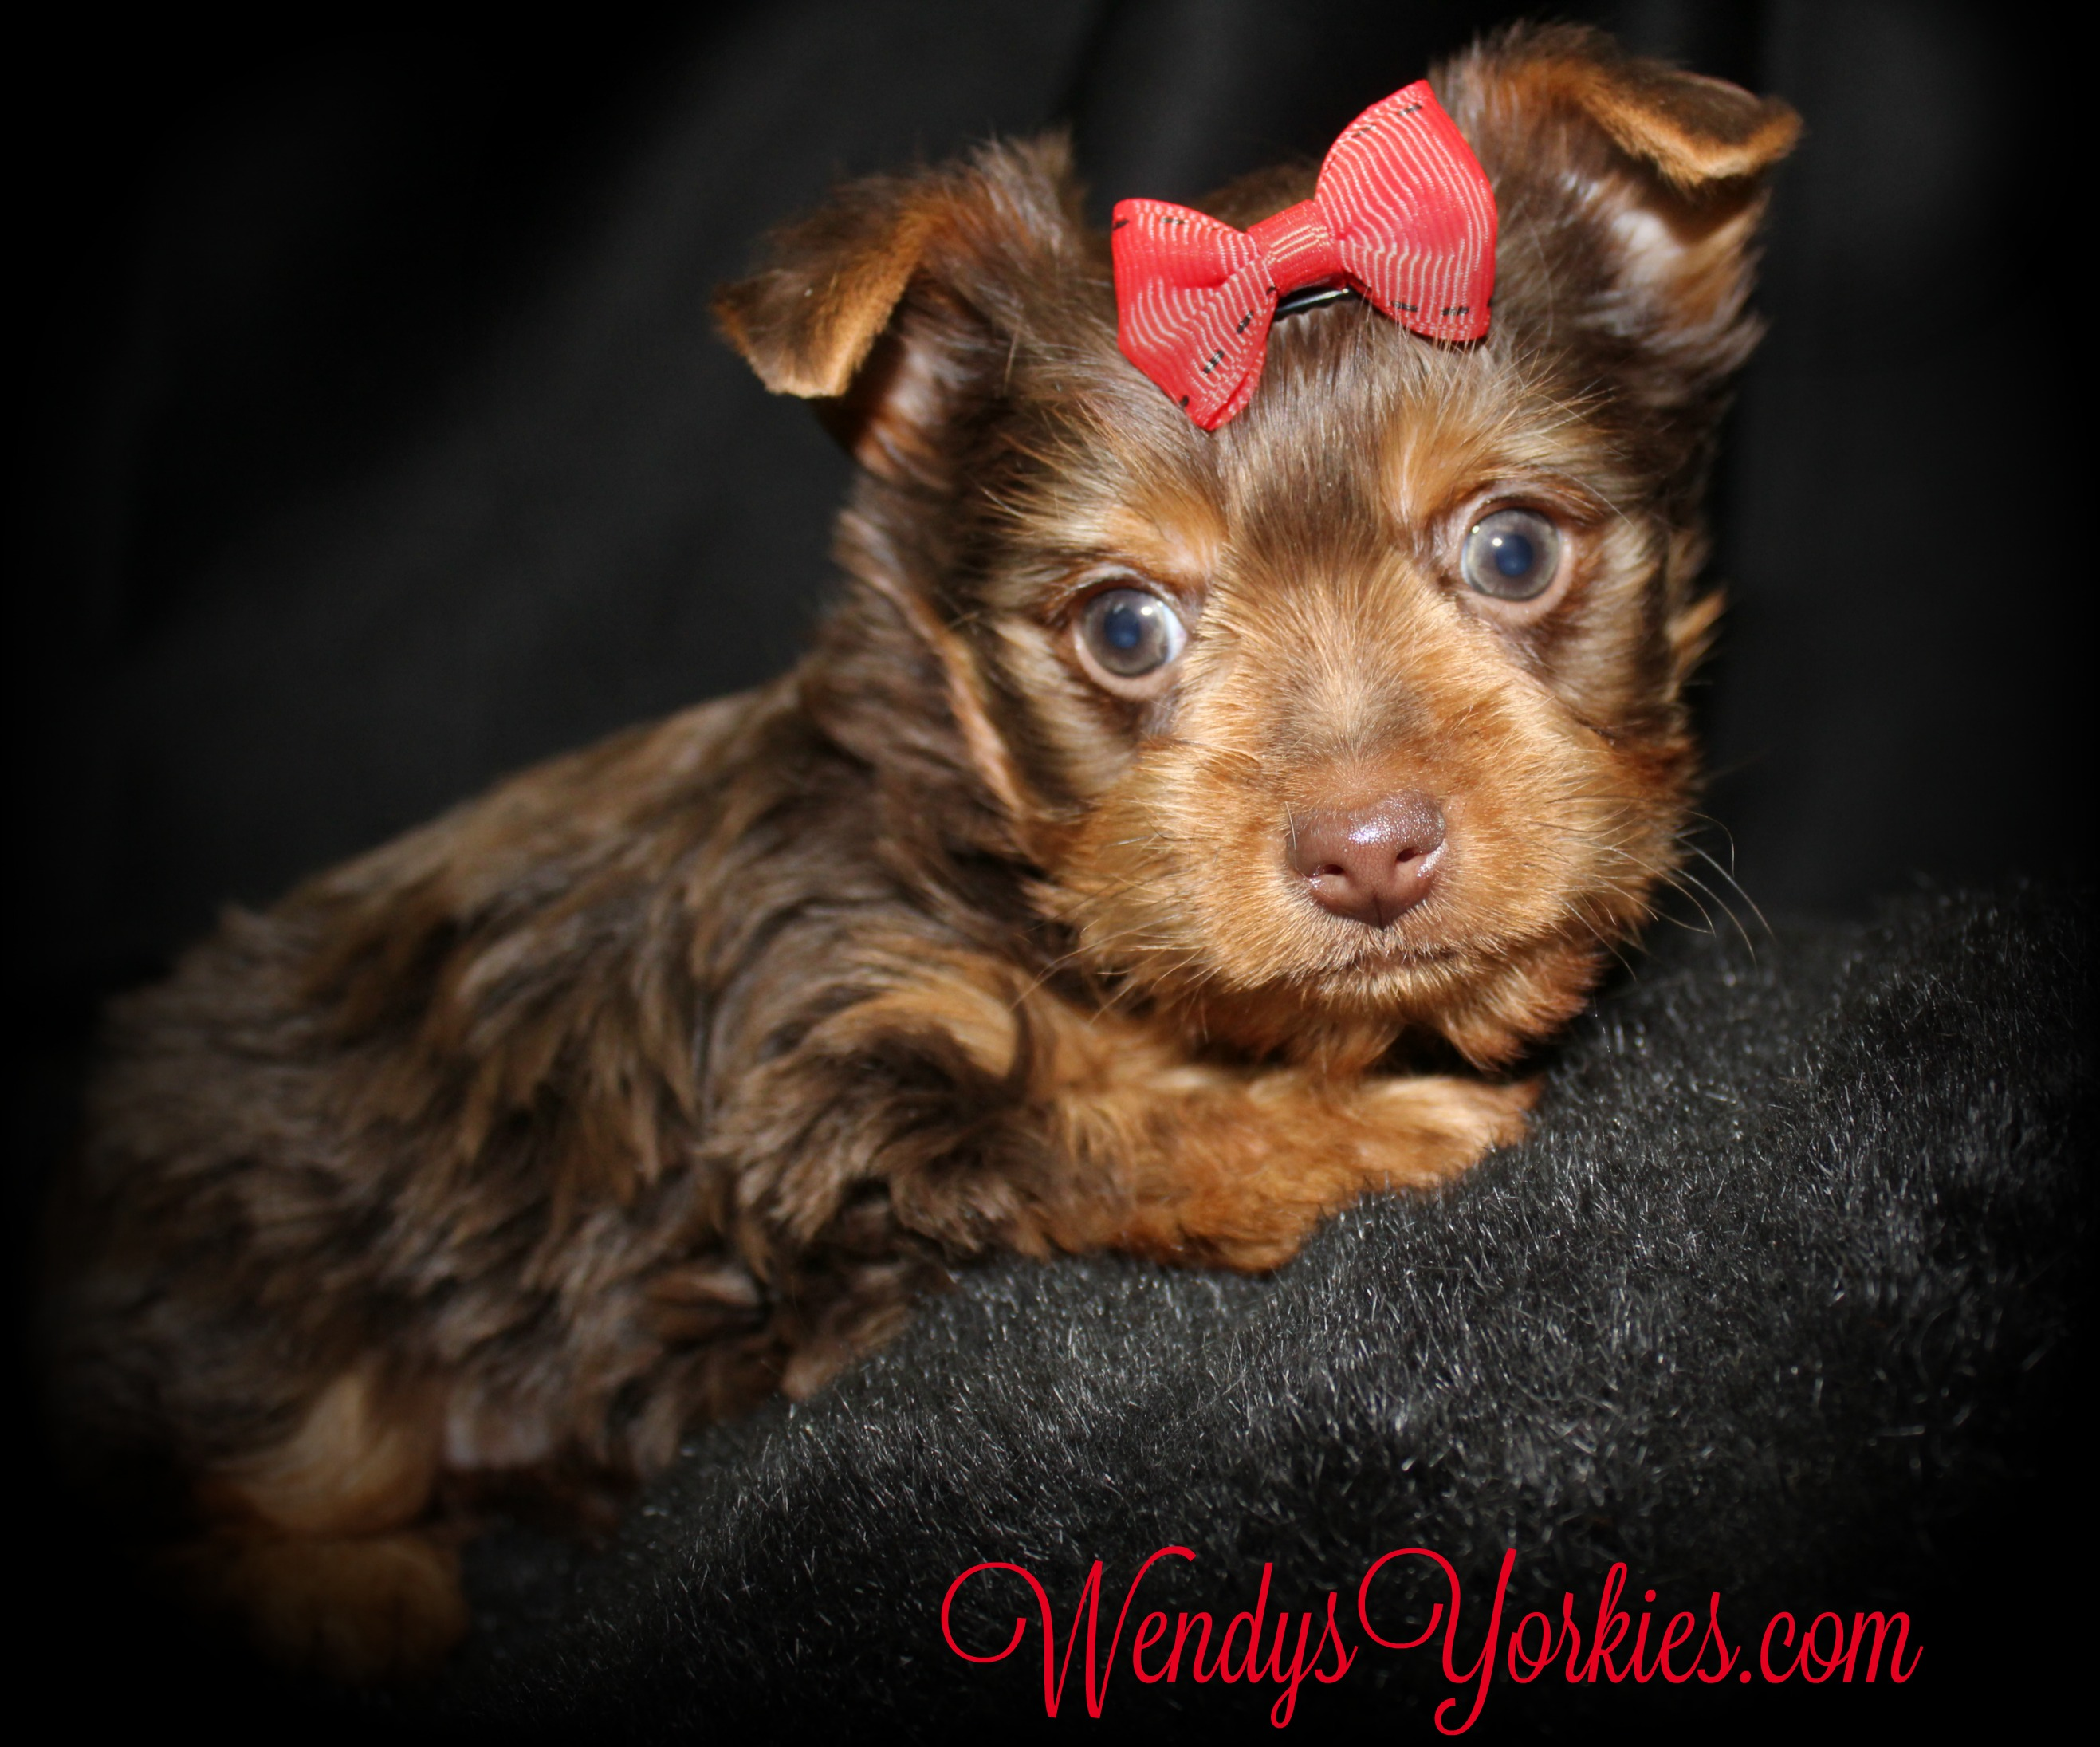 Chocolate Yorkie puppy for sale, WendysYorkies, Grace cm1